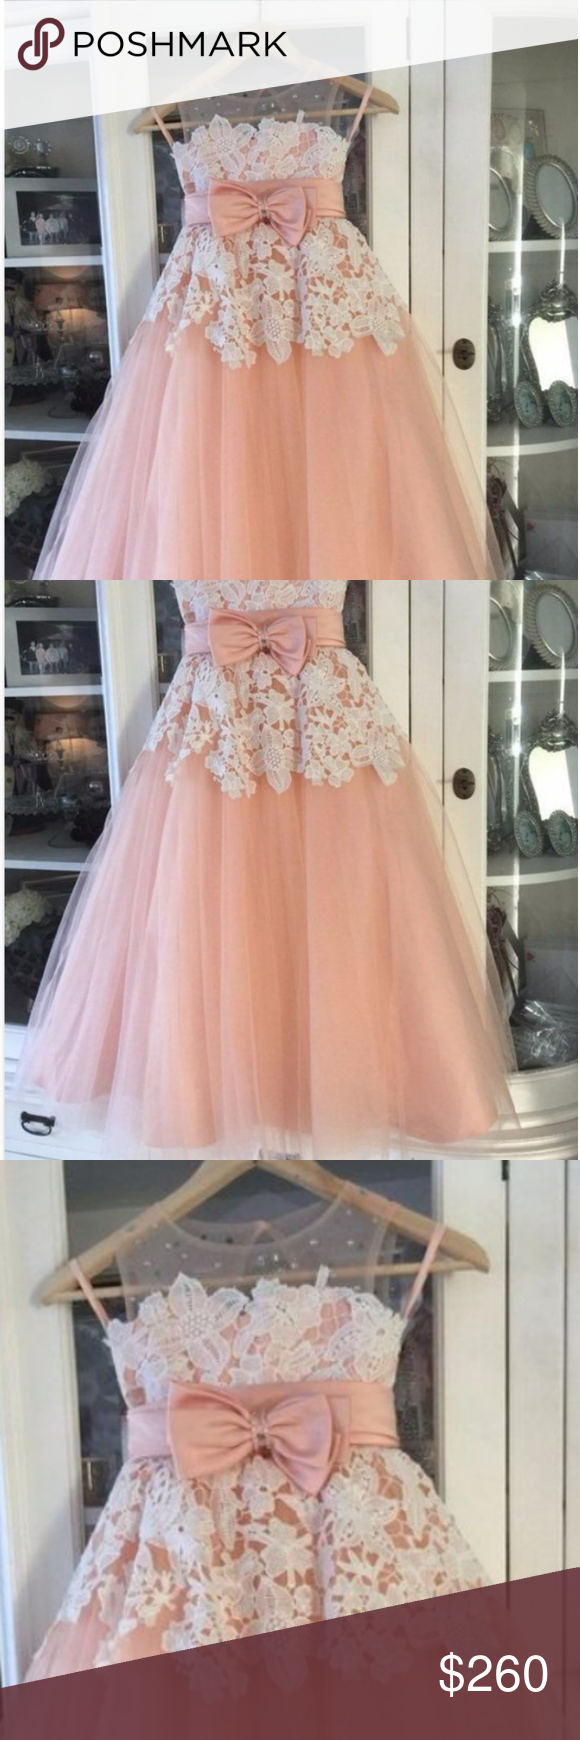 be05f518dfe 4 flower girl dress A-line round neck blush tulle dress with applique  beading. Please see photos for further description. See color chart B for  colors ...